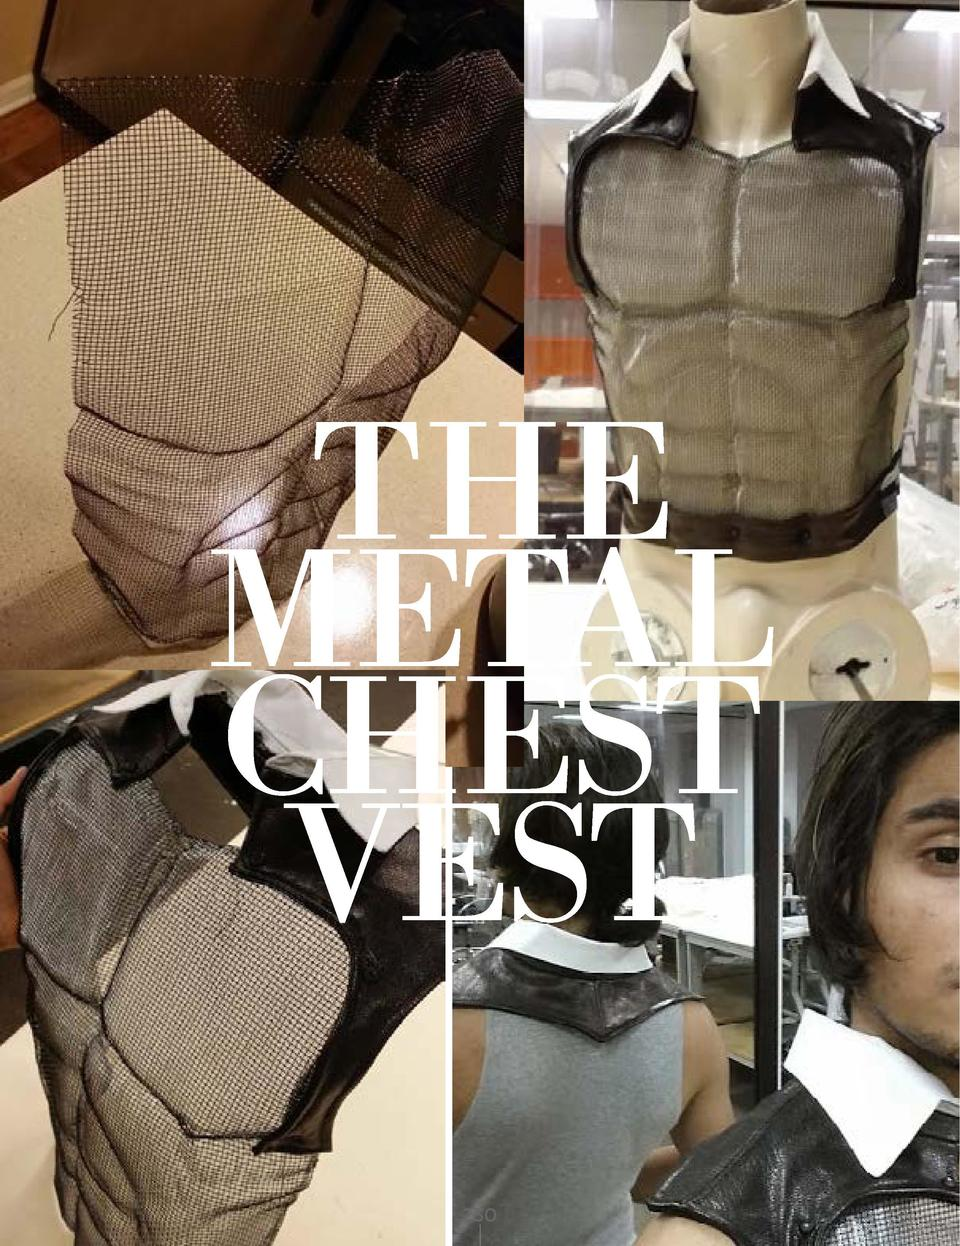 THE METAL CHEST VEST BLACK LEATHER METAL MESH WHITE COLLAR       230